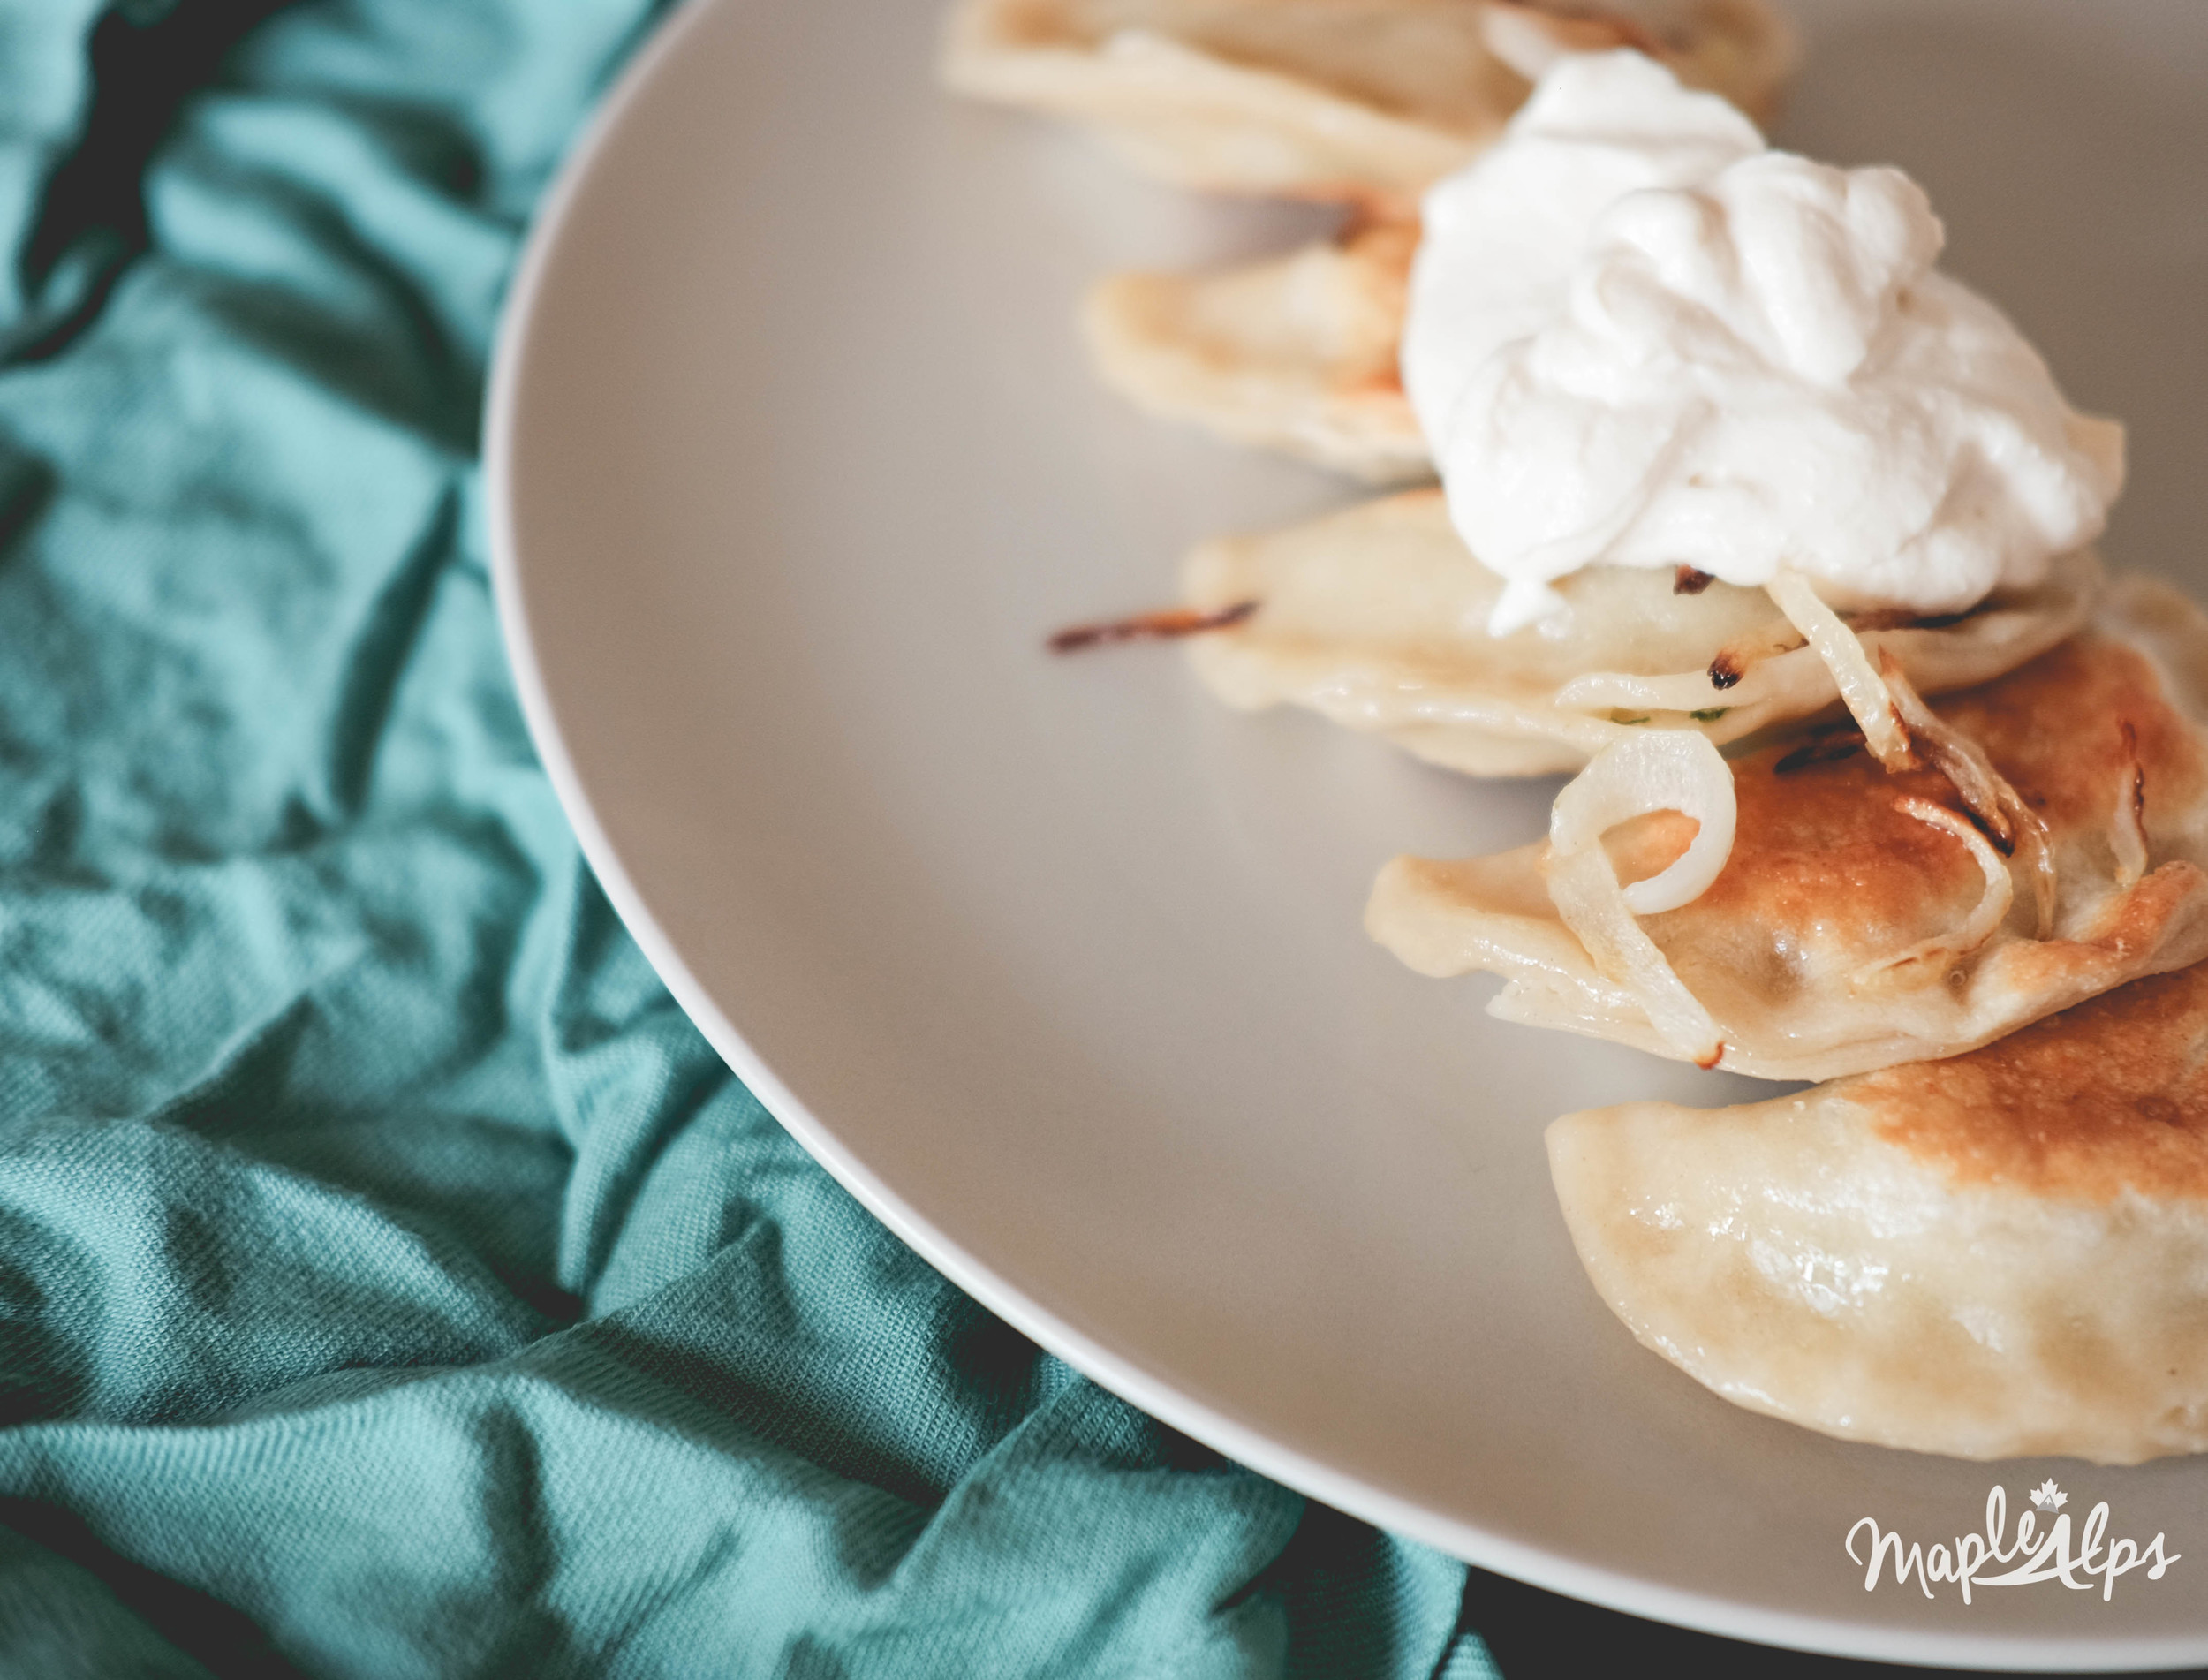 Vegan potato and spinach pierogies from Maple Alps